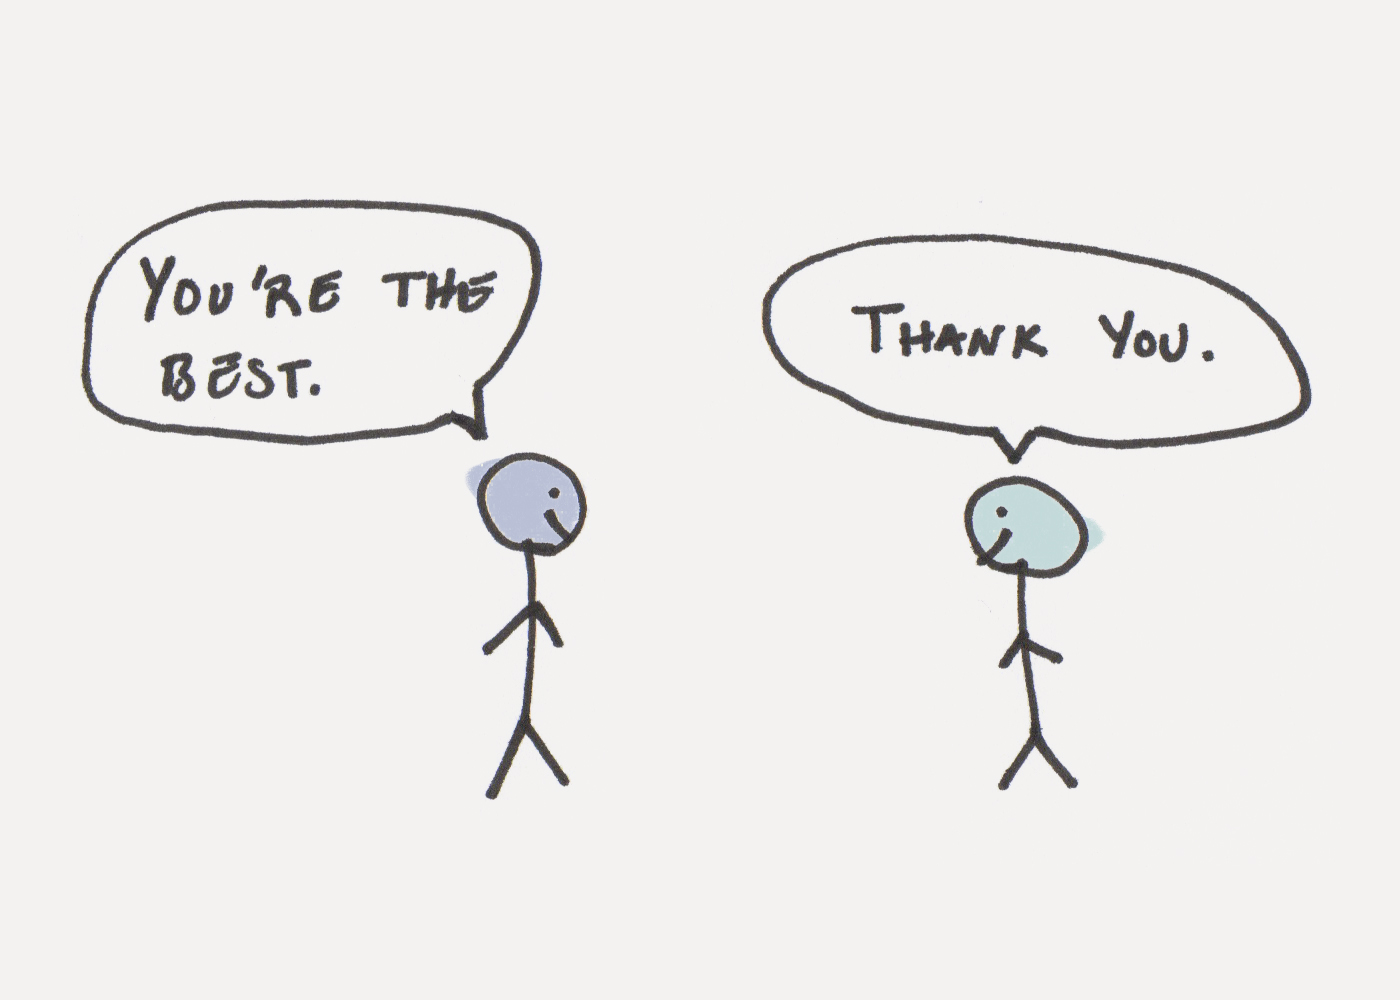 7 Times When You Should Just Say Thank You, But Don't